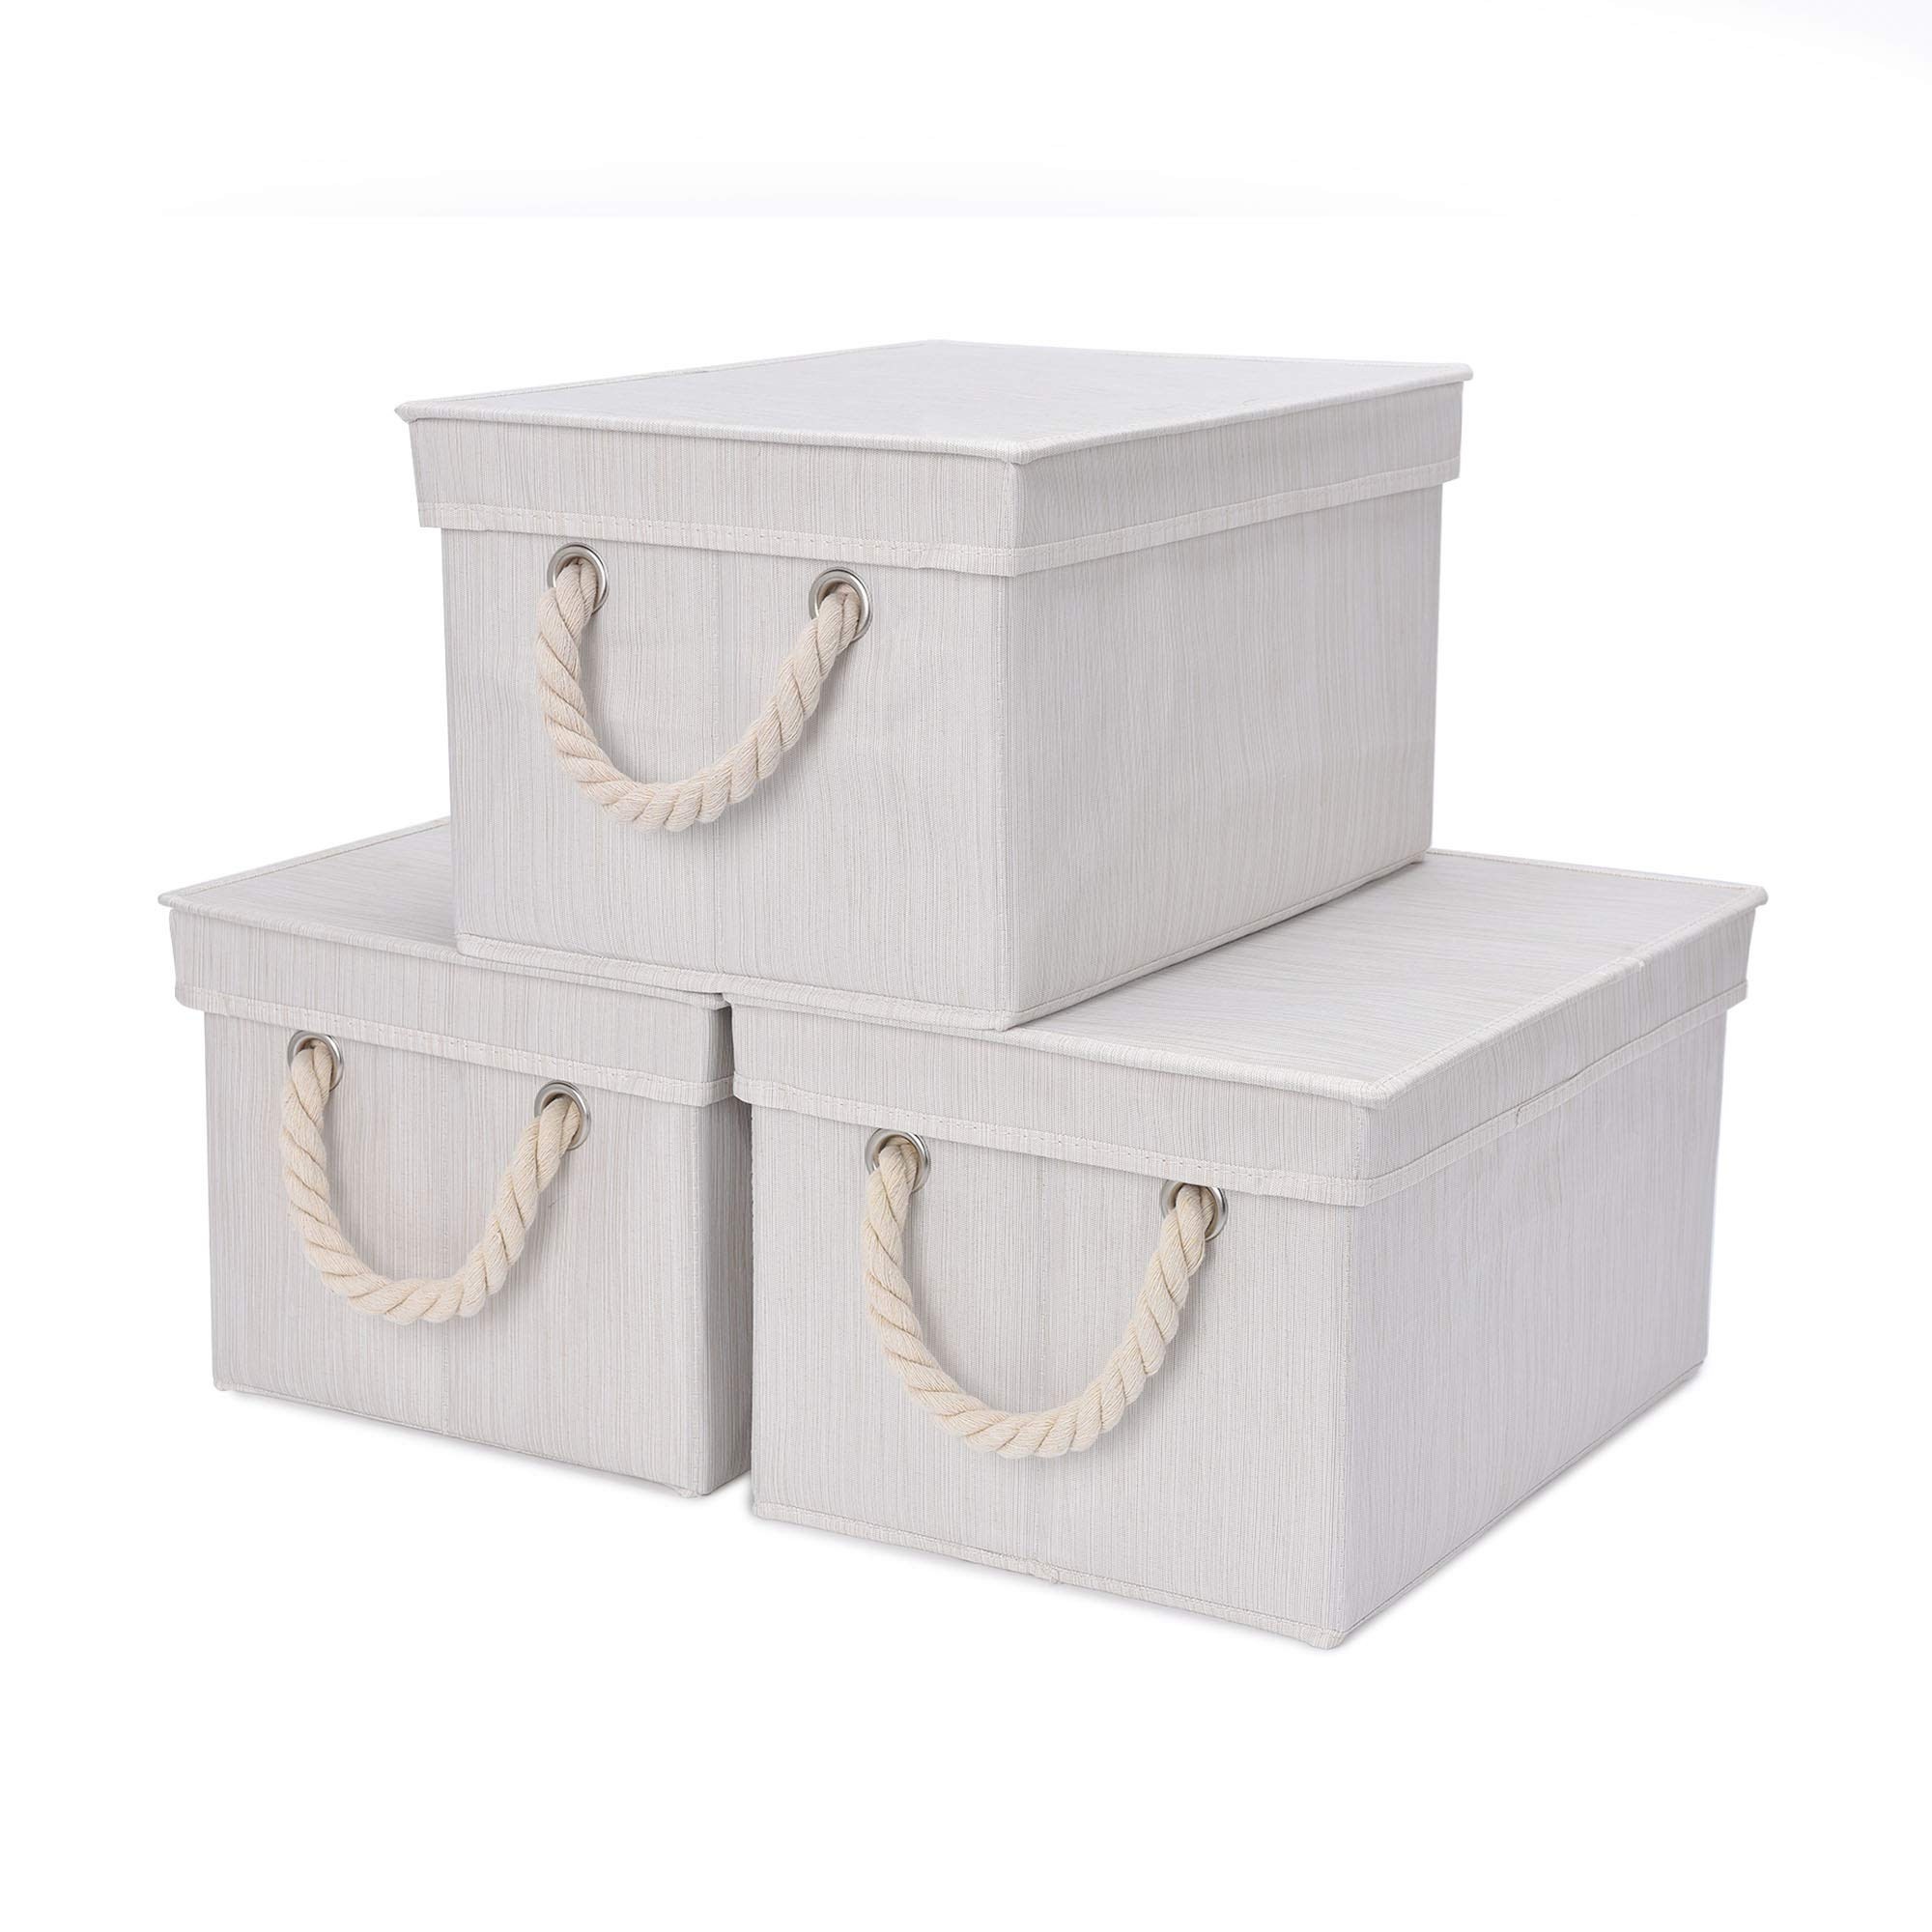 StorageWorks Storage Bins, DVD Storage Box with Lid and Cotton Rope Handles, Foldable Storage Basket, White, Bamboo Style, 3-Pack, Medium, 11.4x8.7x6.9 inches. (LxWxH) by StorageWorks